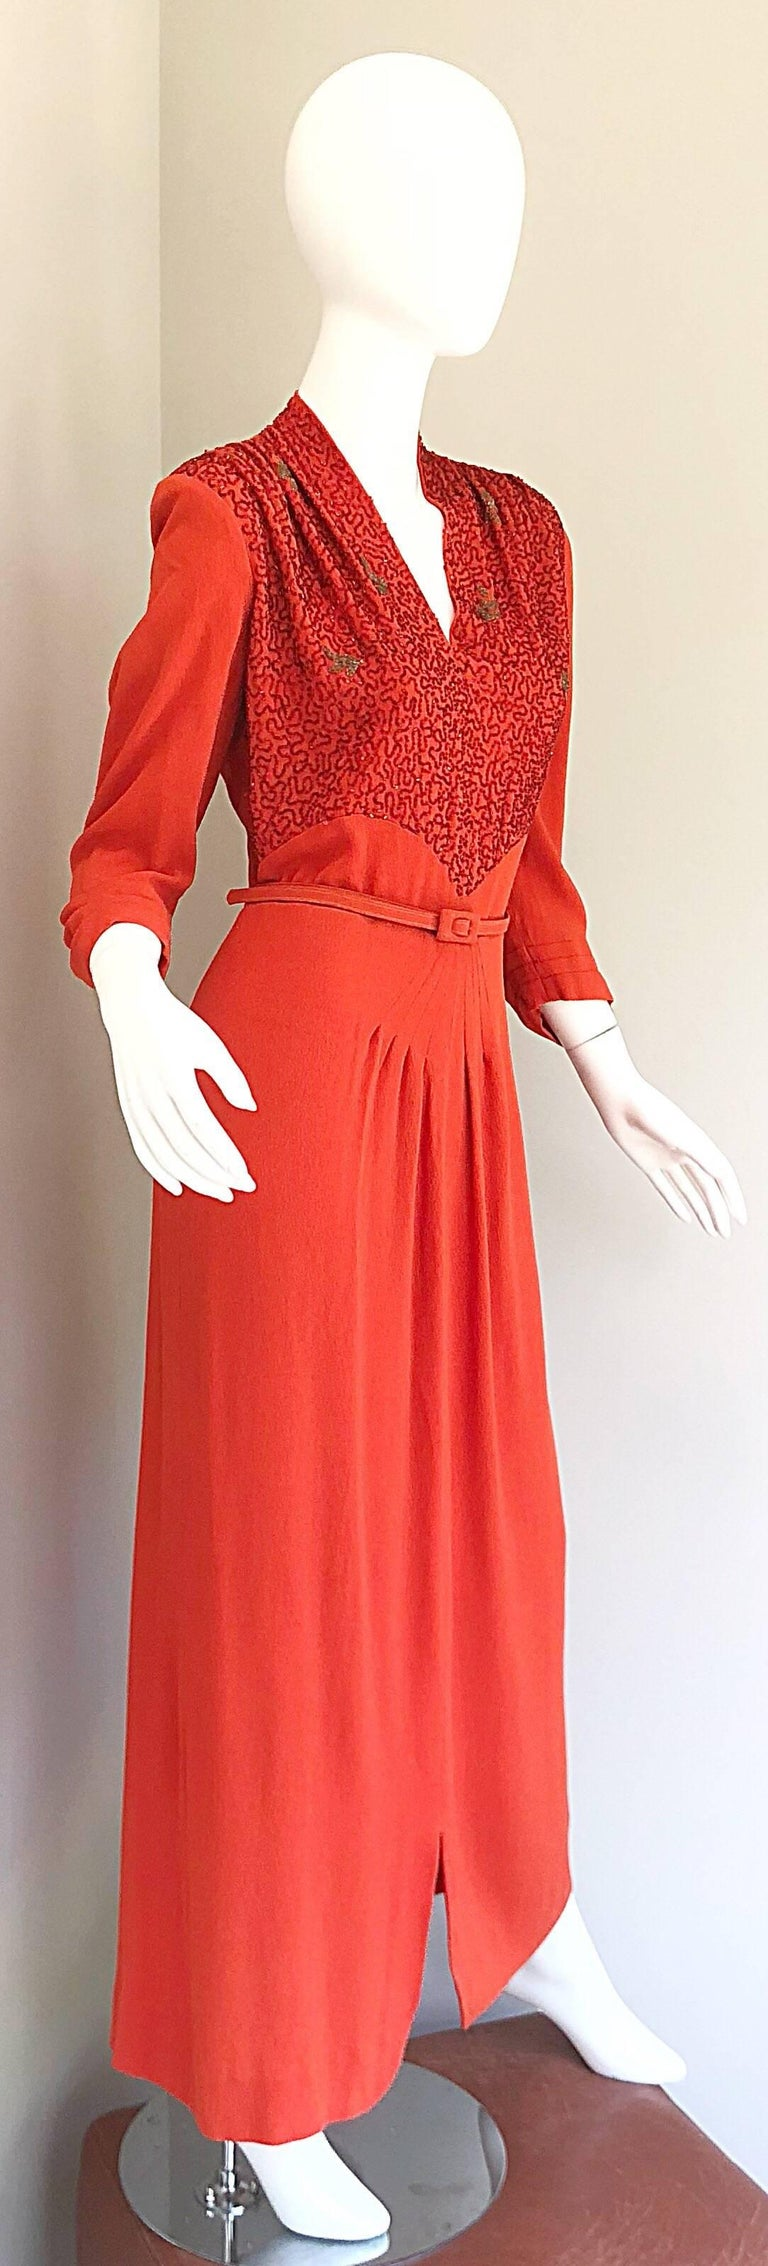 fb007ba757ff 1940s Kornhauser Original Burnt Orange Beaded Vintage 40s Couture Crepe Gown  For Sale 9